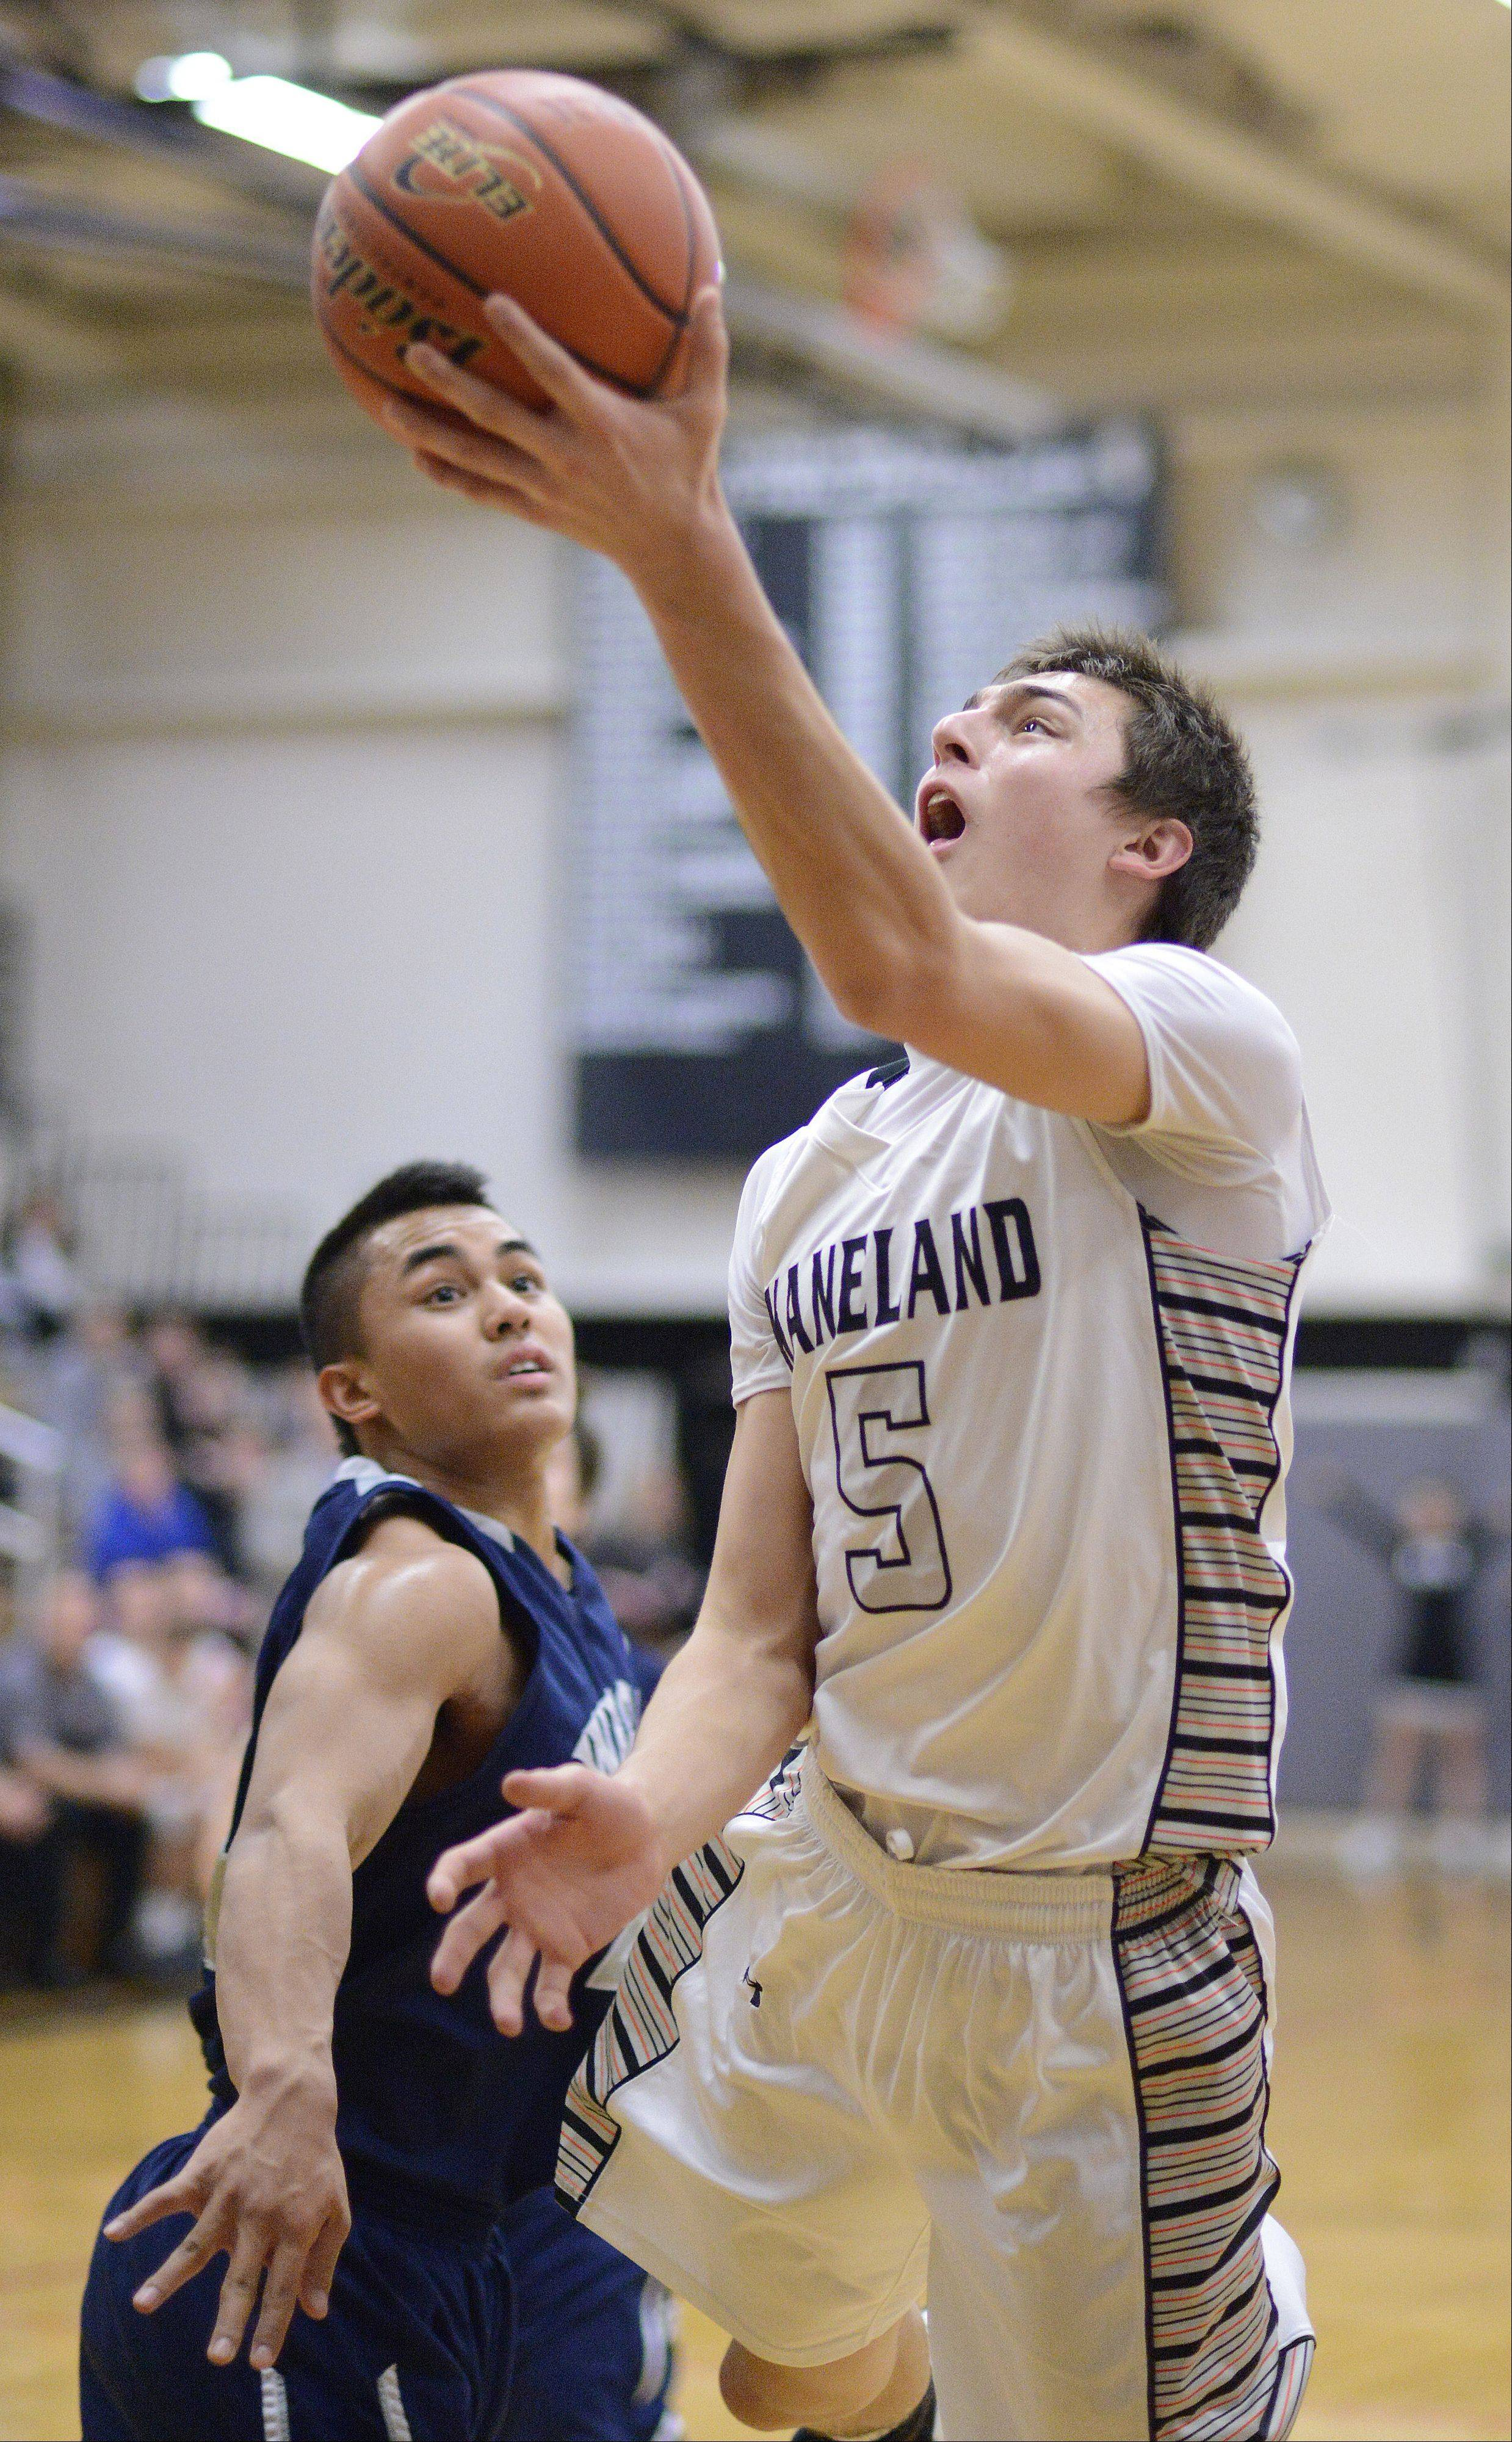 West Chicago's Marco Lomibao tries to block as Kaneland's John Pruett sinks a shot in the first quarter.